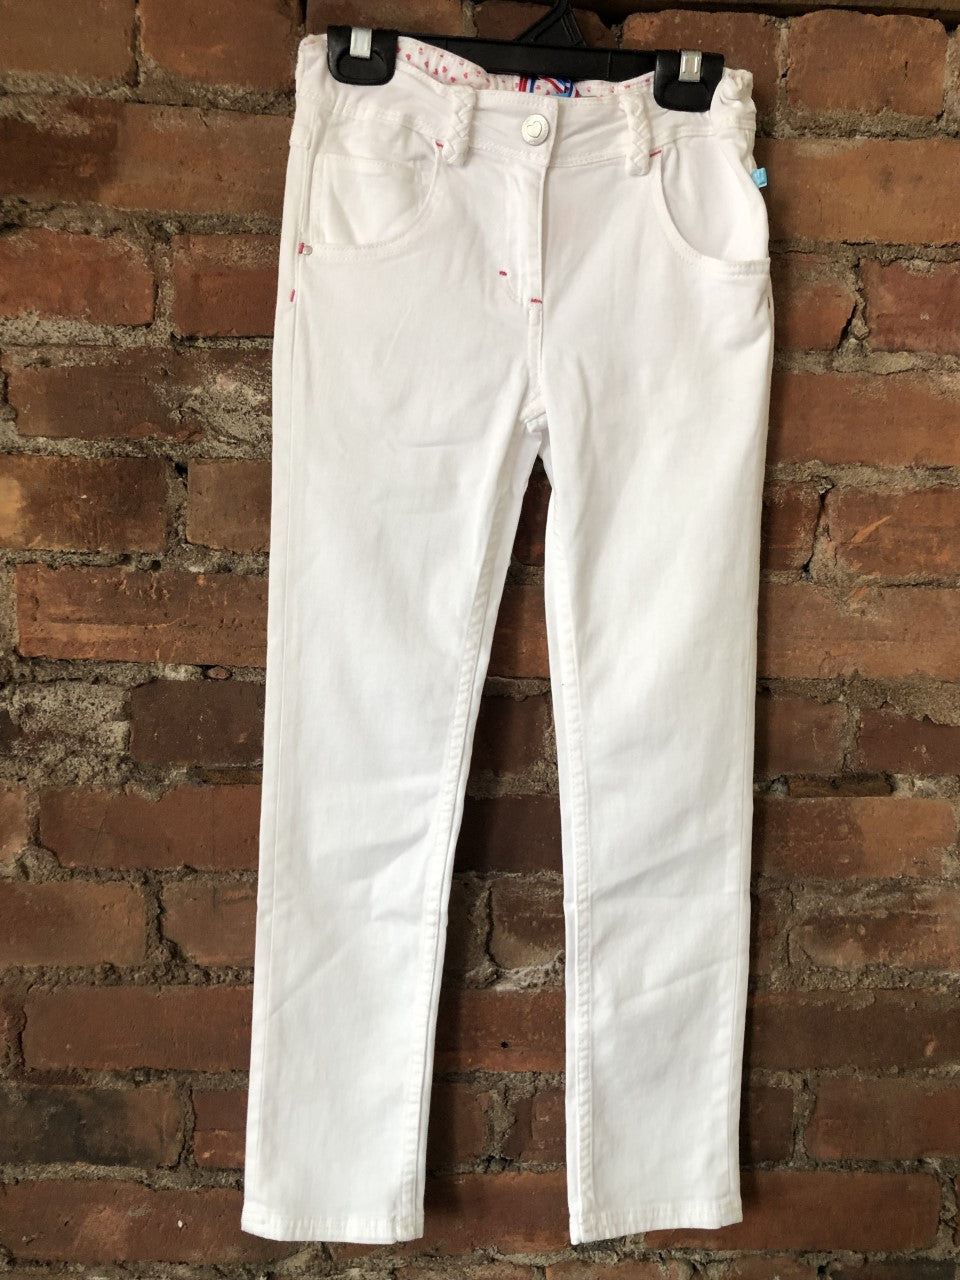 White Jeans with Braid Belt Loop - Lullaby's Boutique